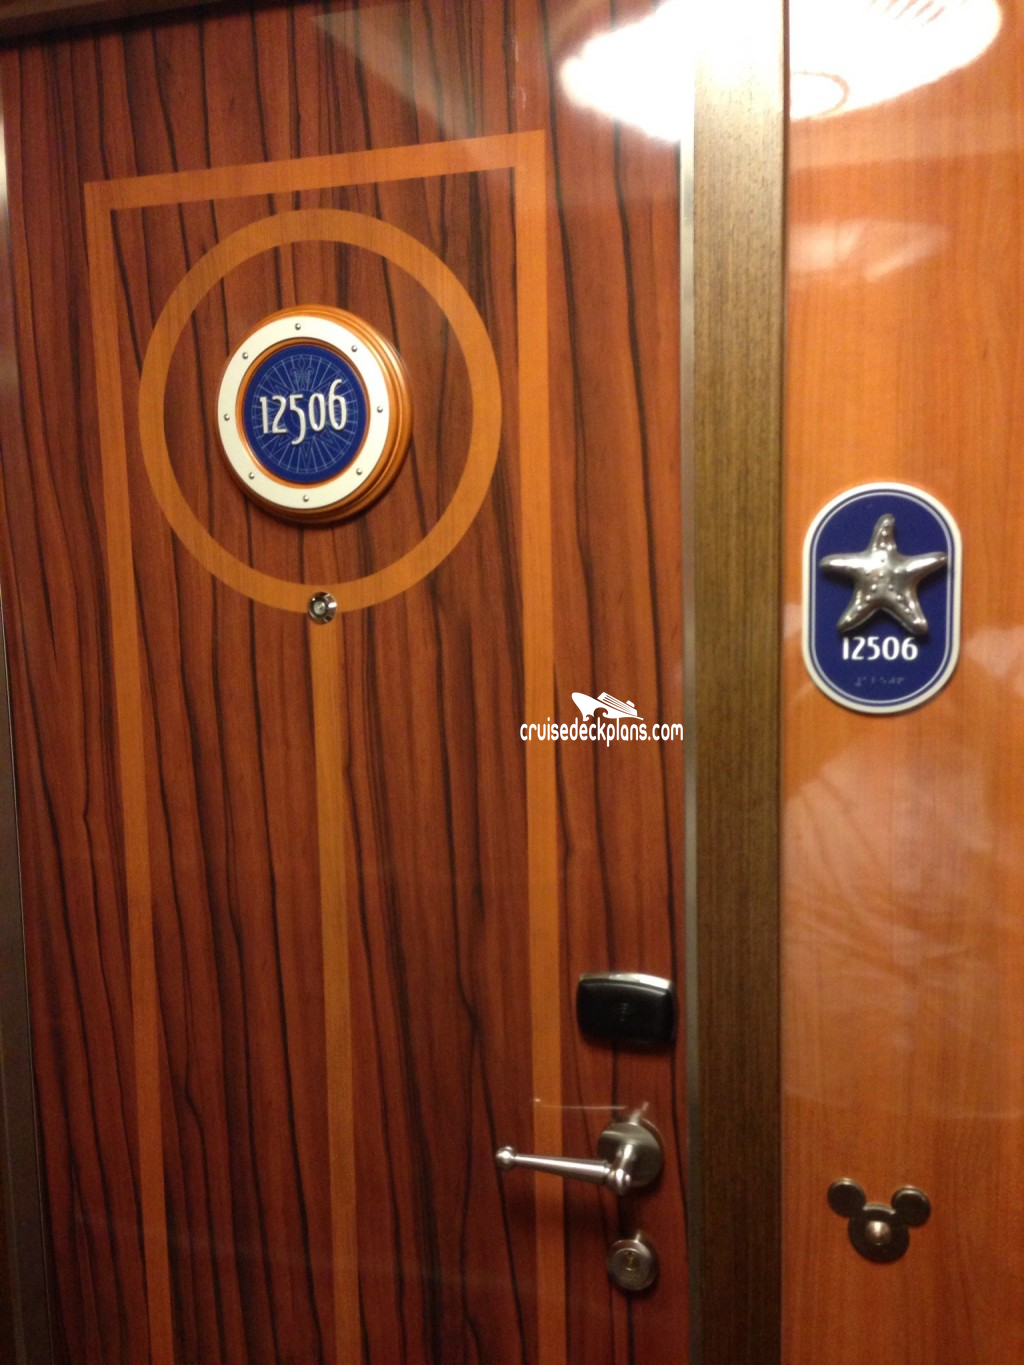 [ IMG] & magnets on concierge doors? | The DIS Disney Discussion Forums ...